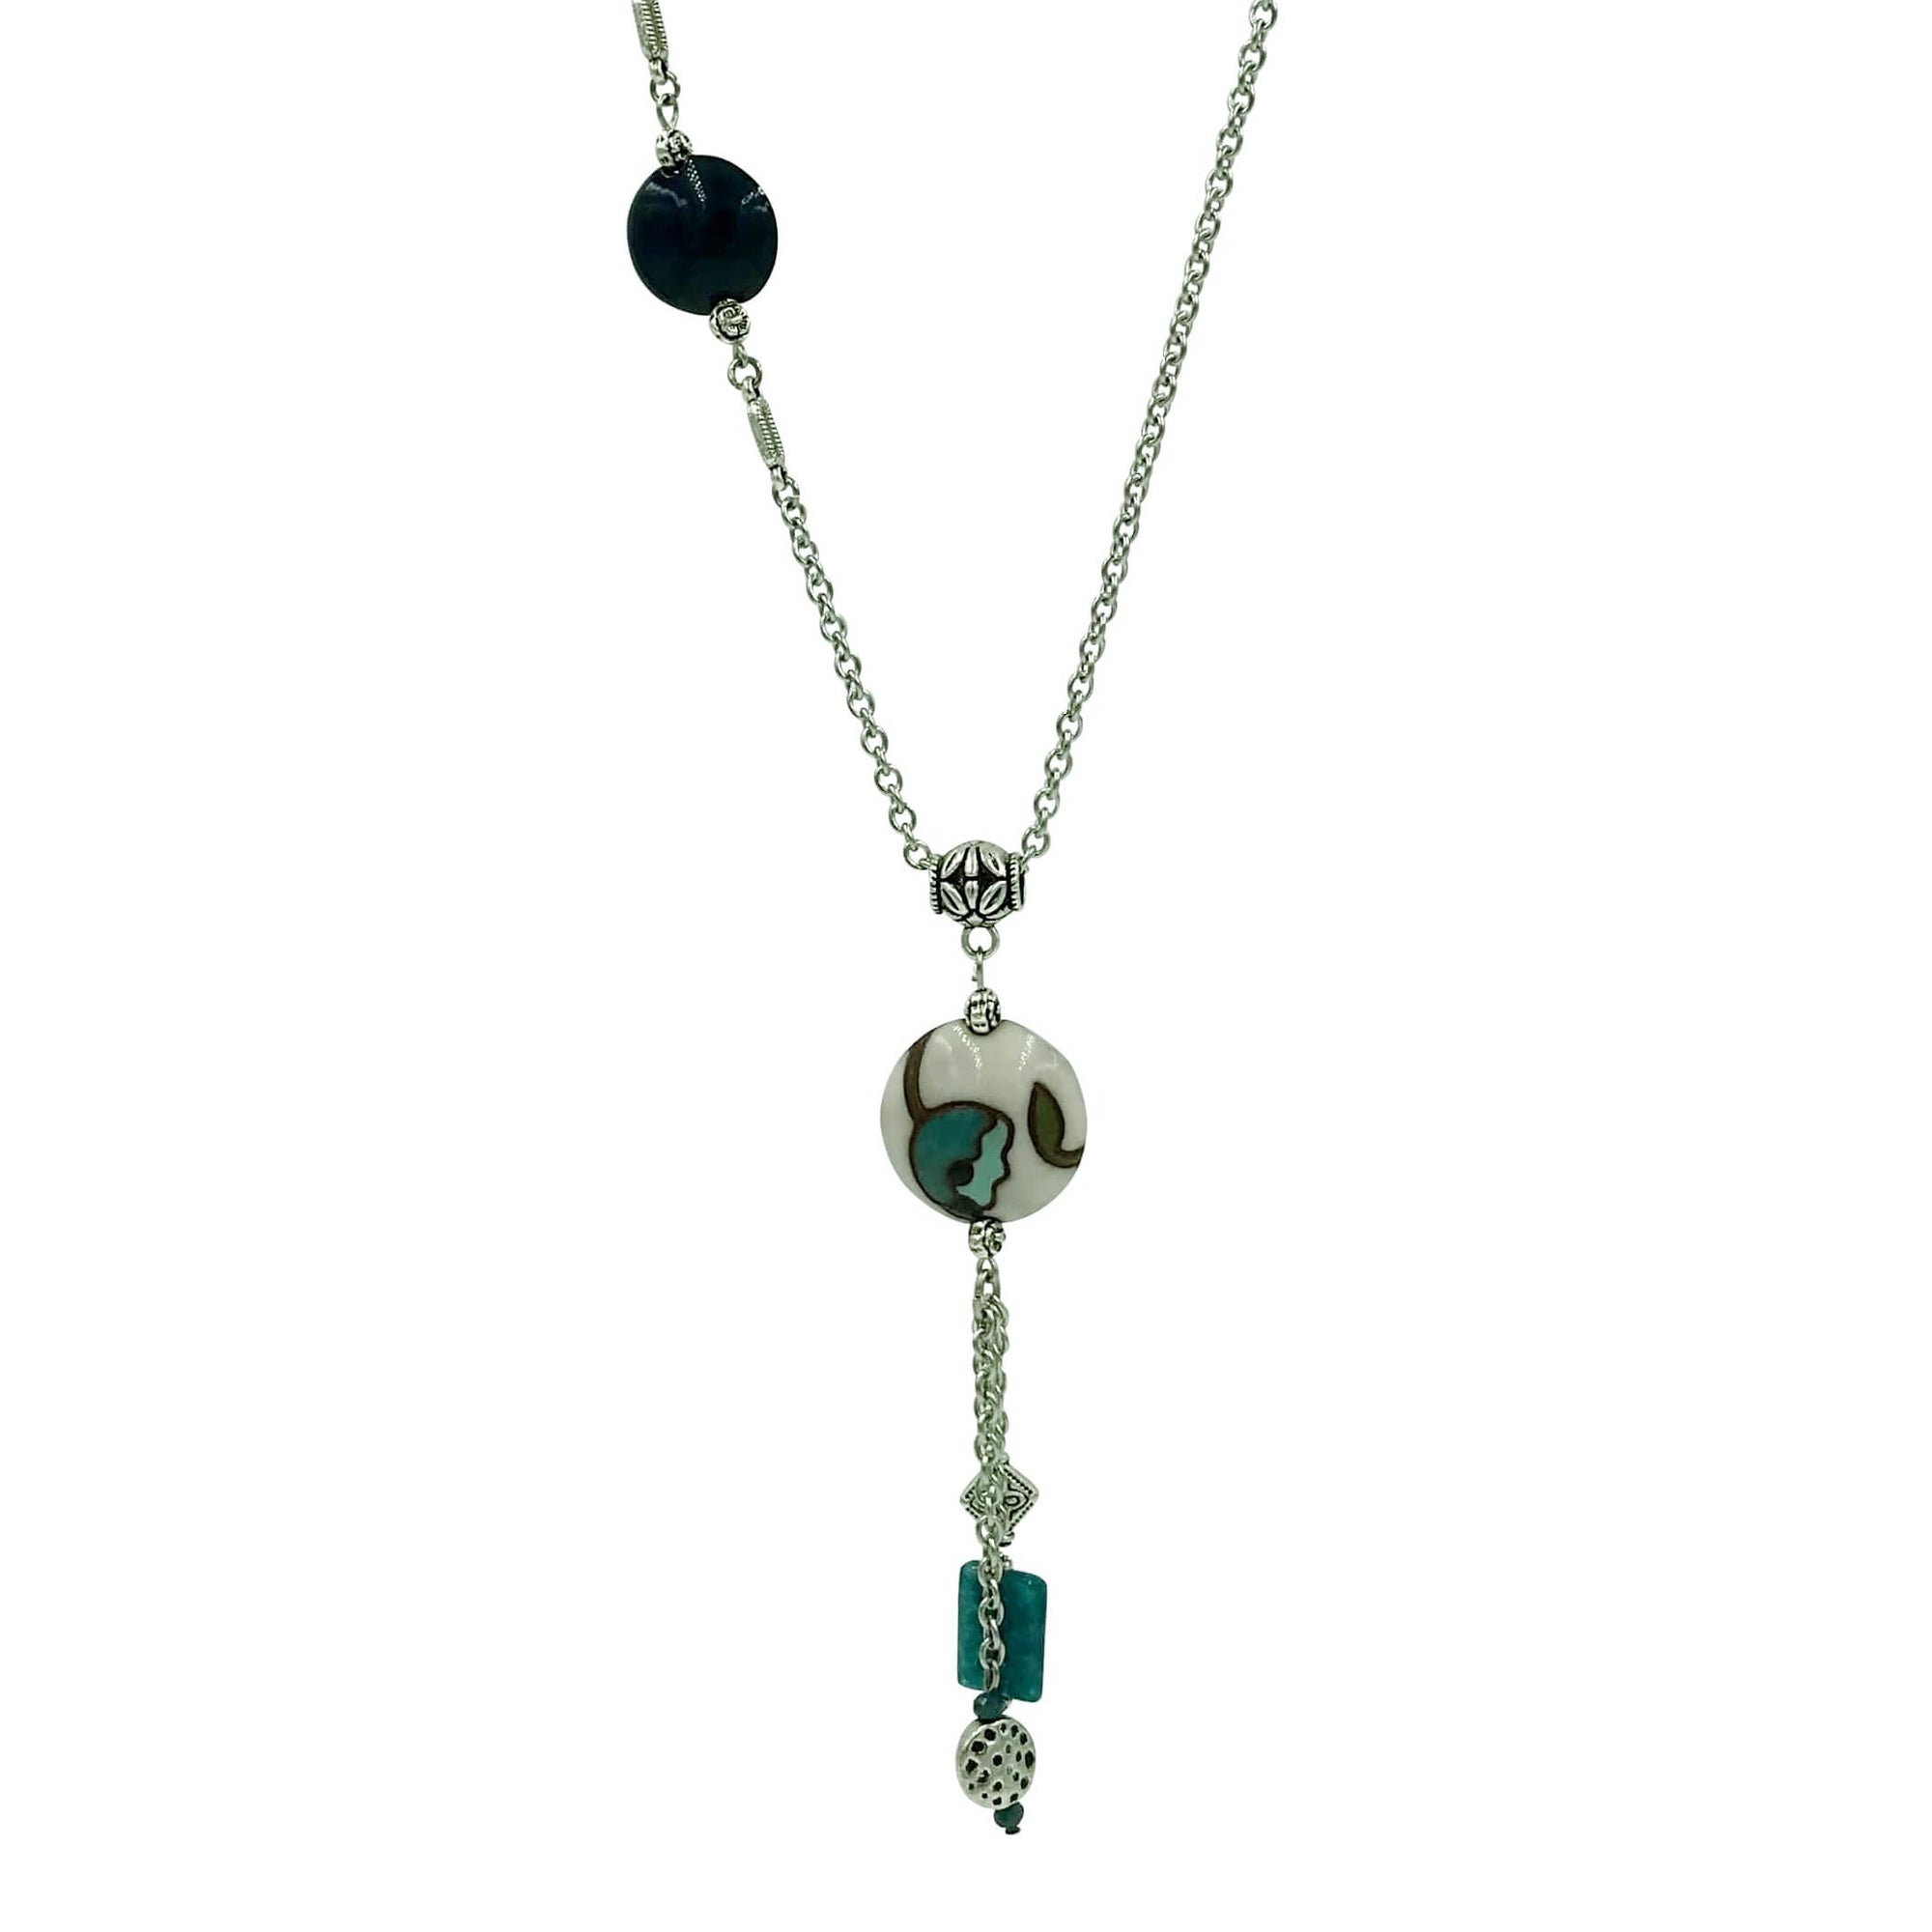 Teal Flower Golem Pendant Necklace with Apatite Stone and Golem Clay Beads-Necklaces- Creative Jewelry by Marcia